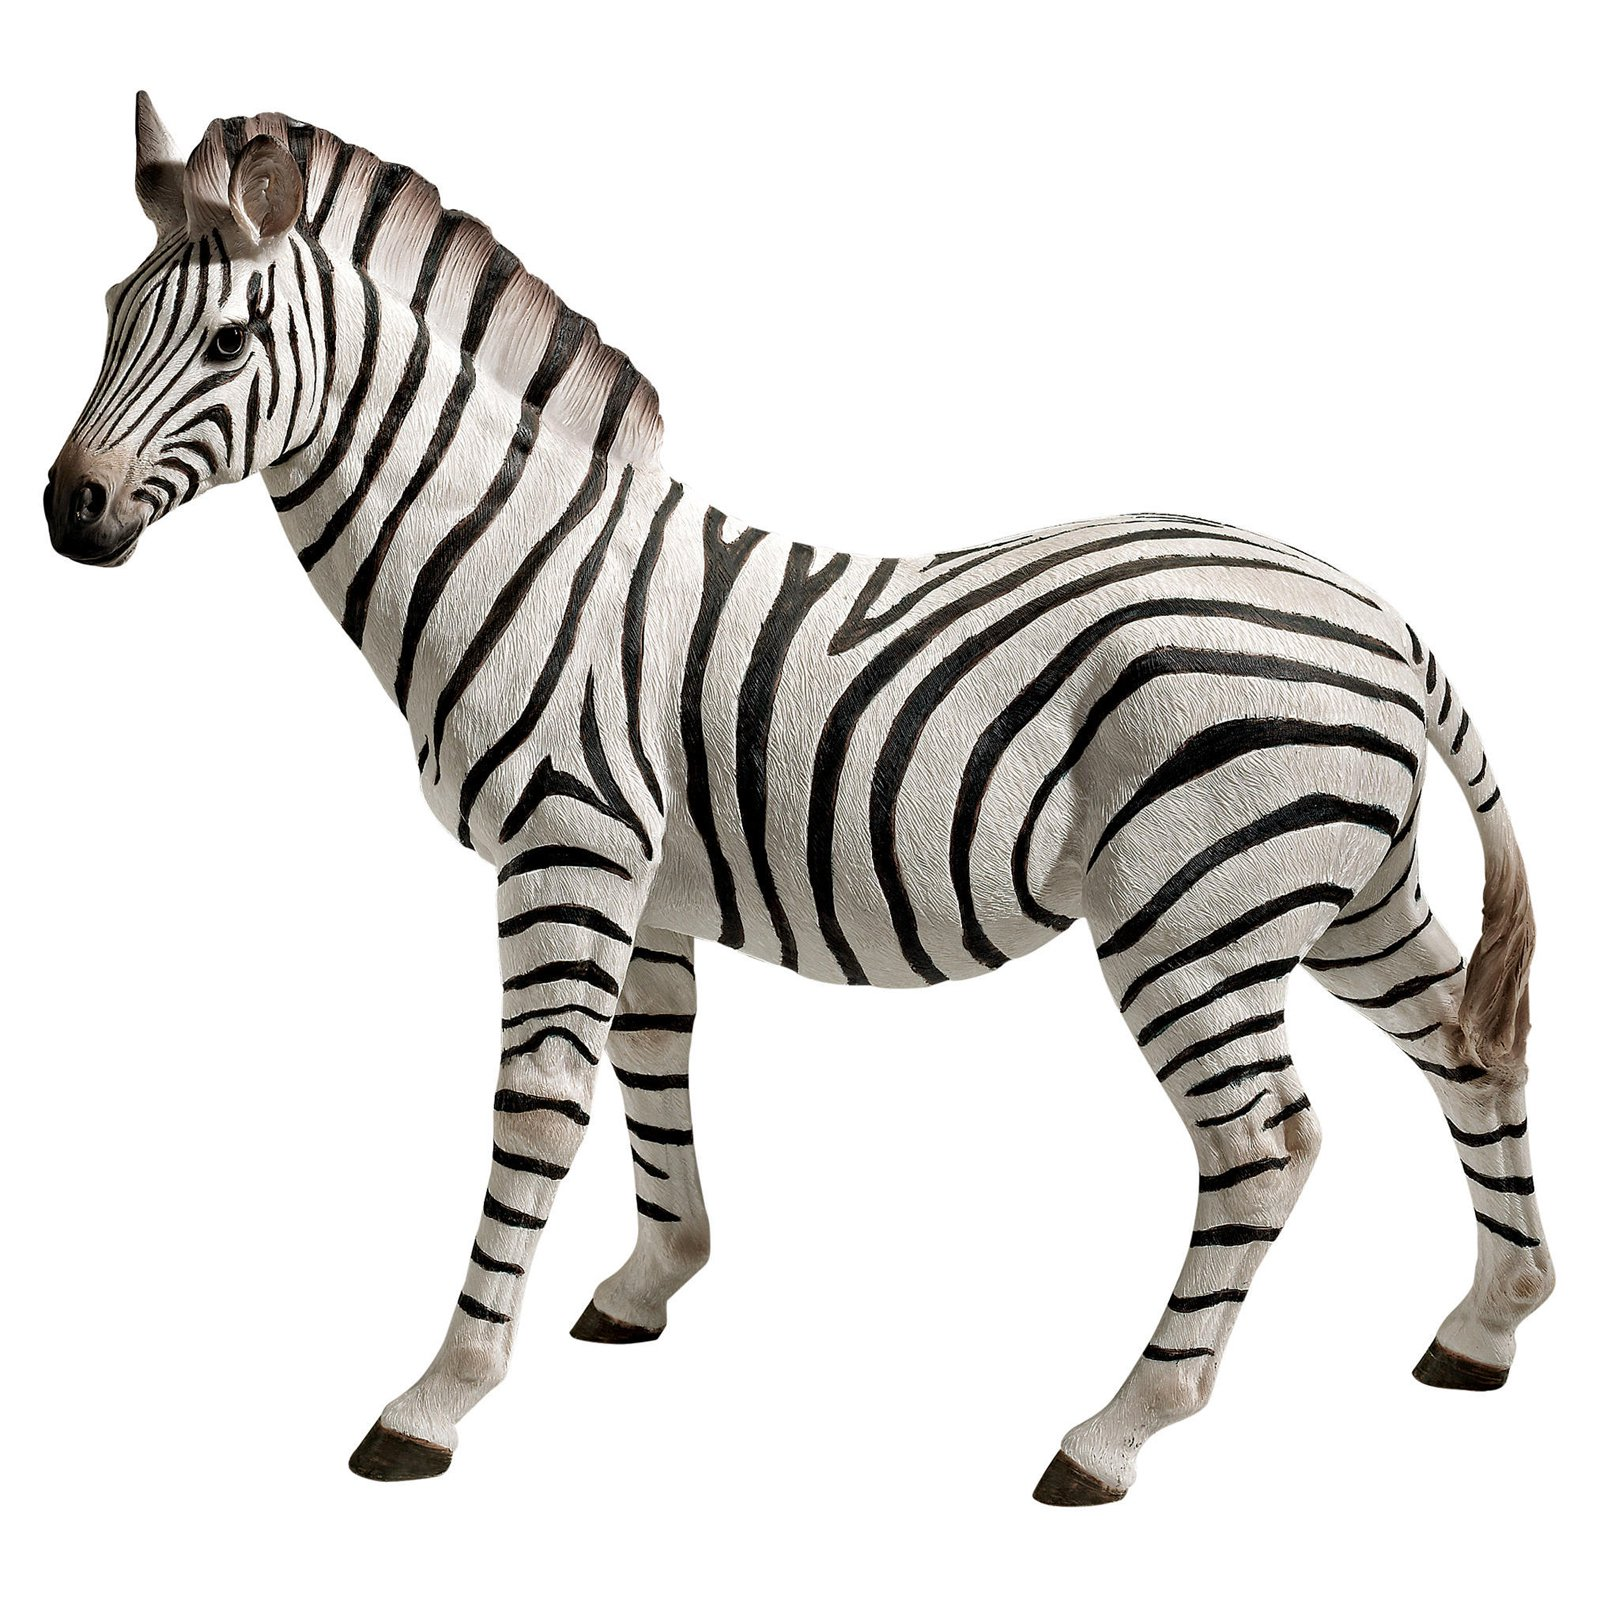 Zora The Zebra Statue Design Toscano Zora The Zebra  Zebra Statue  Animal Statue